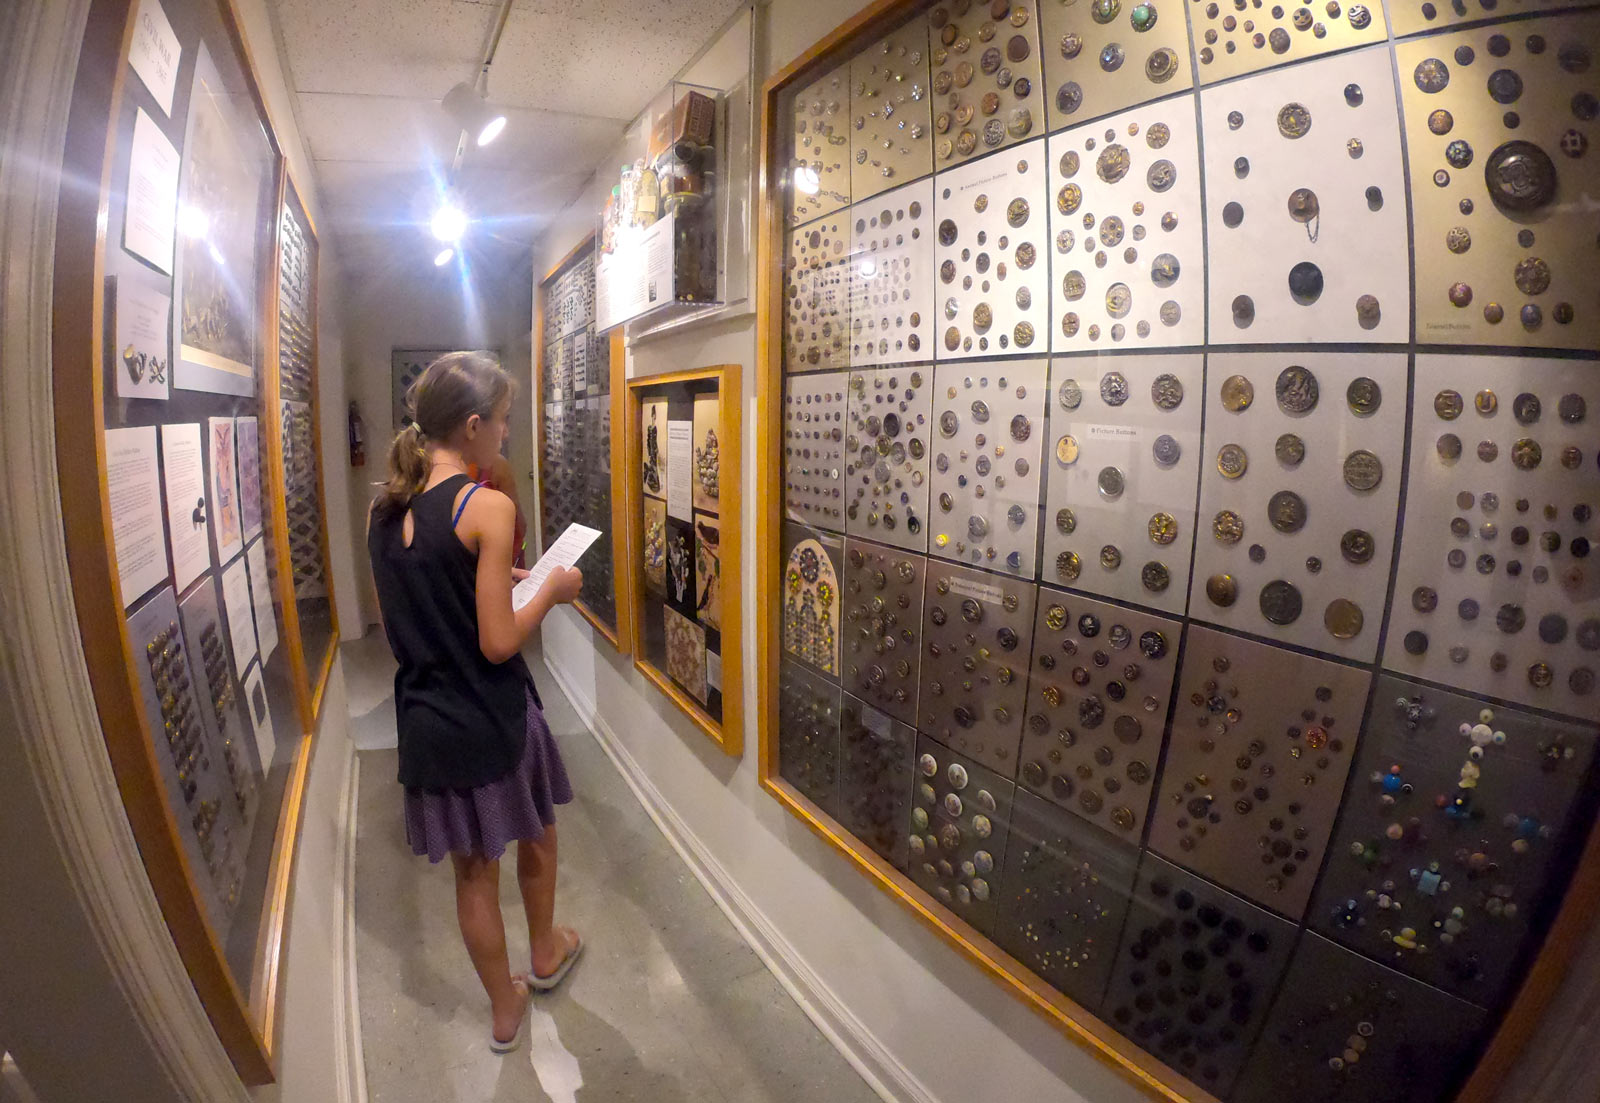 Young girl looking at button collections on walls of Lightner Museum in Saint Augustine, Florida